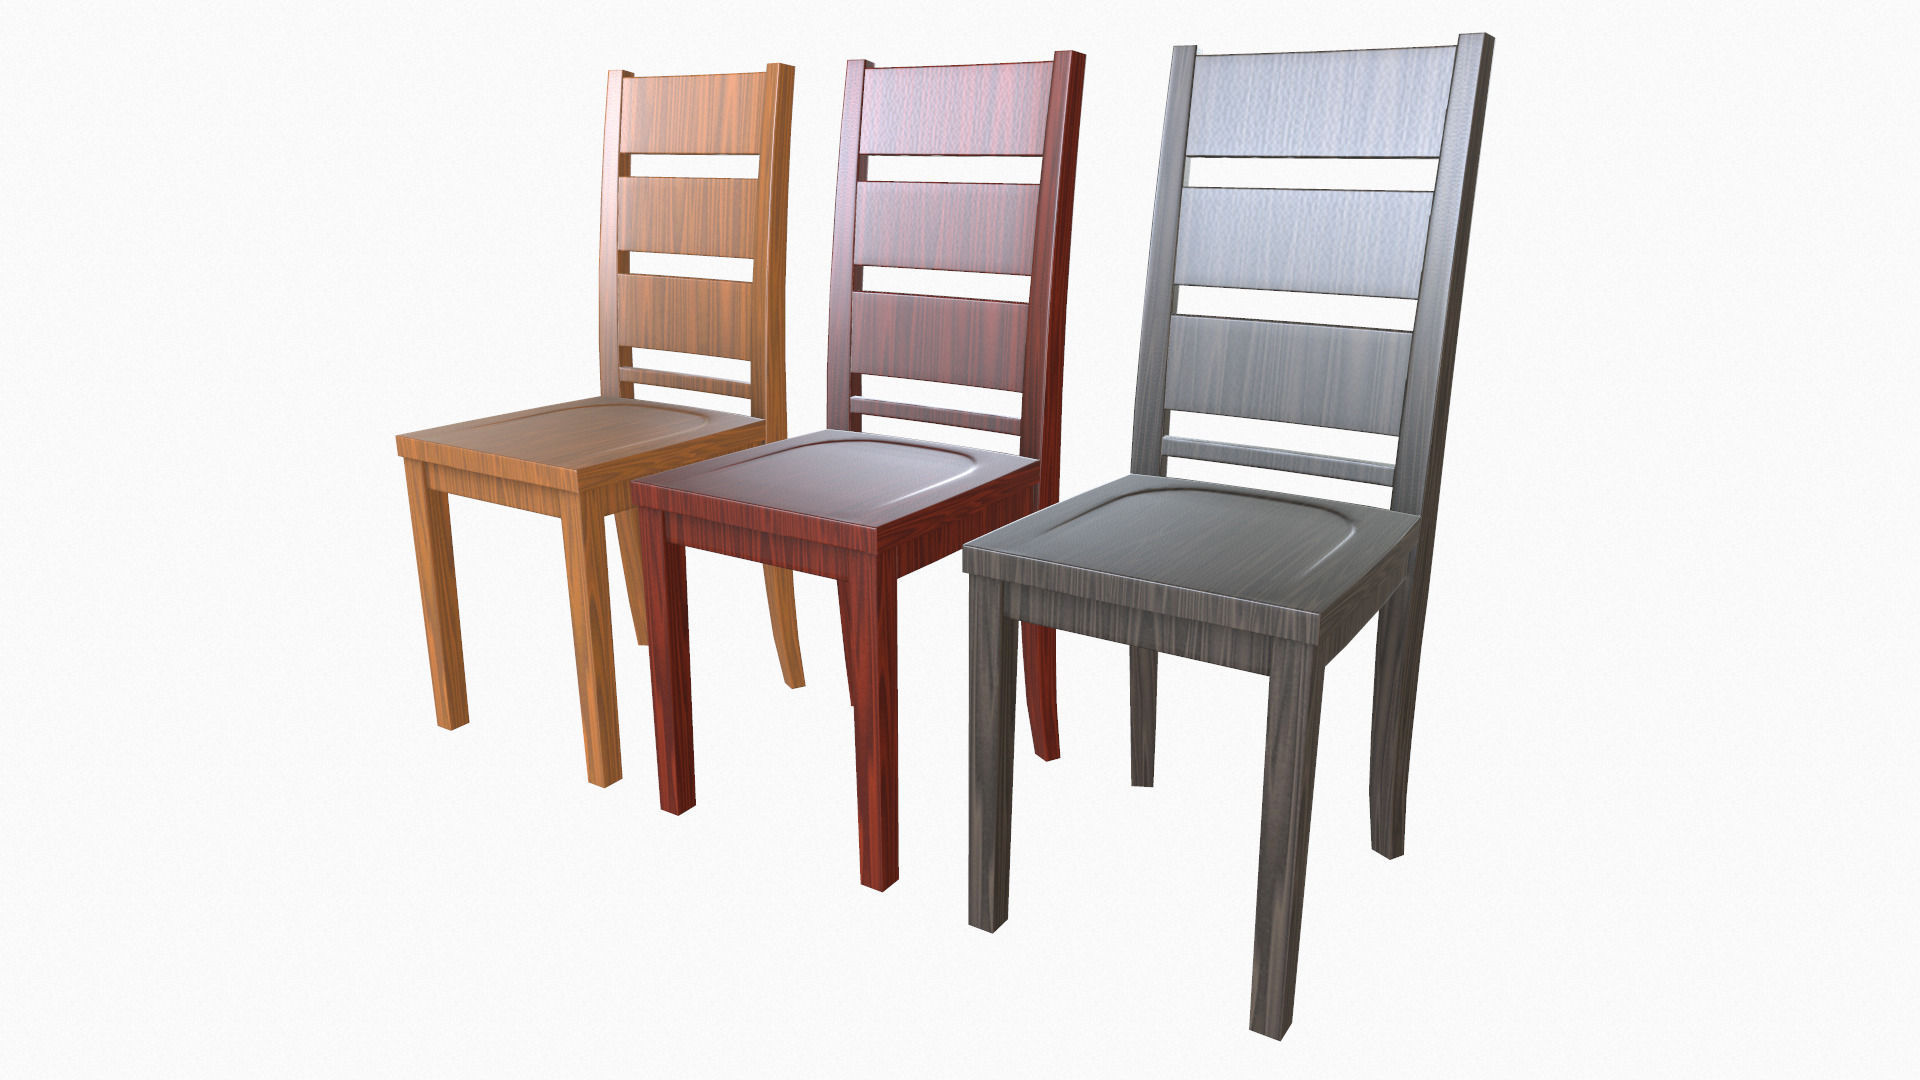 Simple wooden dining chairs -  Simple Wooden Dining Chair 3d Model Low Poly Obj Fbx 2